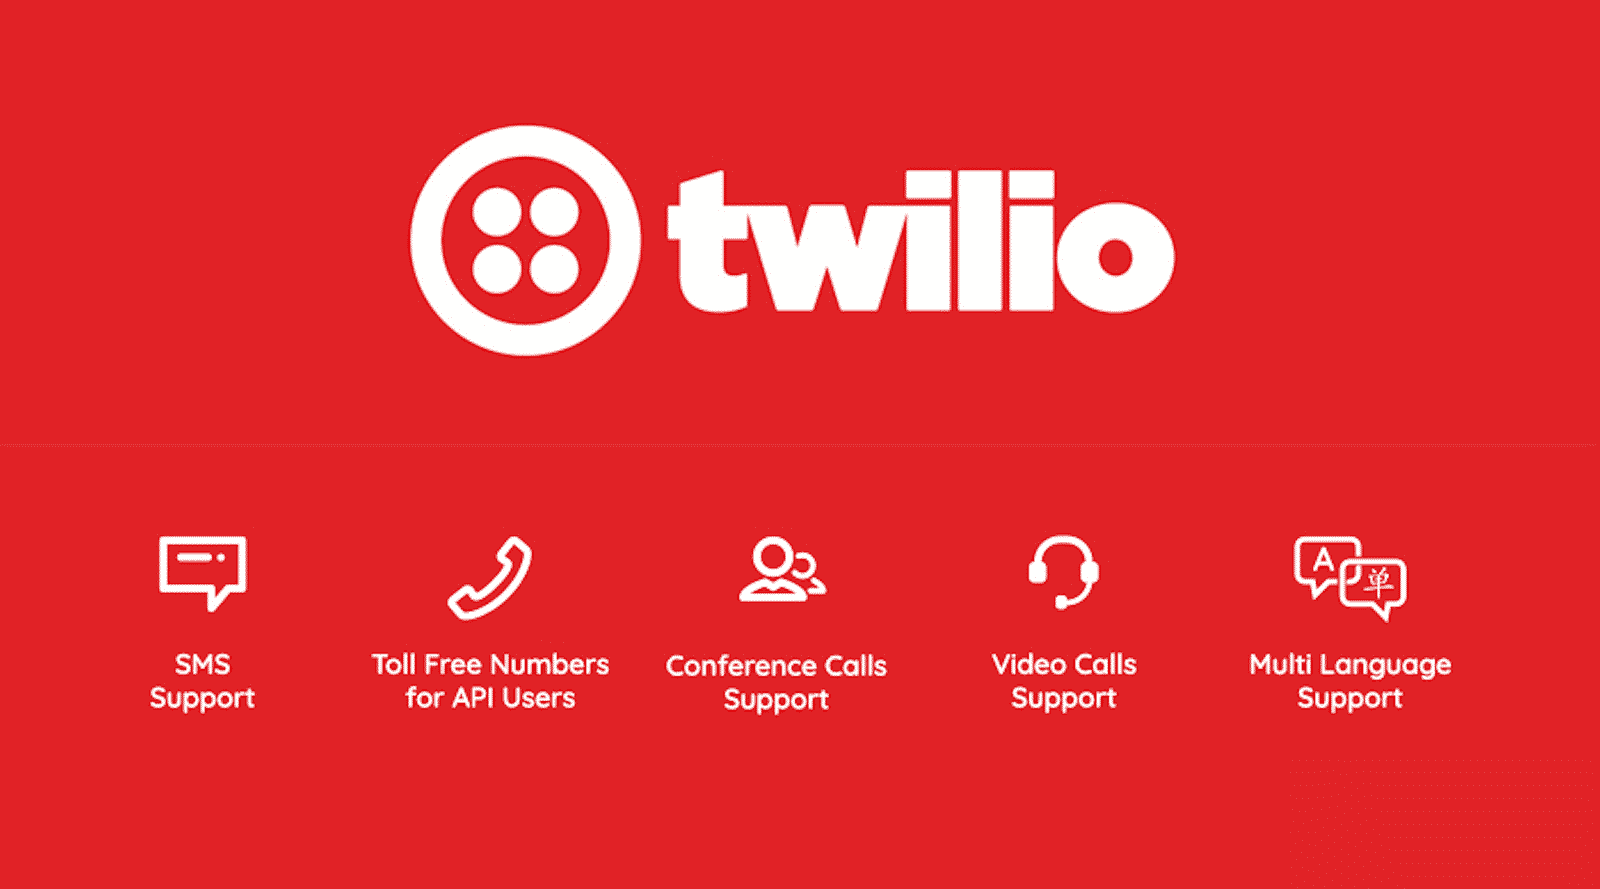 Twilio has democratized communications channels like voice, text, chat, and video by virtualizing the world's telecommunications infrastructure through APIs that are simple enough for any developer to use, yet robust enough to power the world's most demanding applications. More than 2 million developers around the world have used Twilio to unlock the magic of communications to improve any human experience. By making communications a part of every software developer's toolkit, Twilio is enabling innovators across every industry — from emerging leaders to the world's largest organizations — to reinvent how companies engage with their customers.